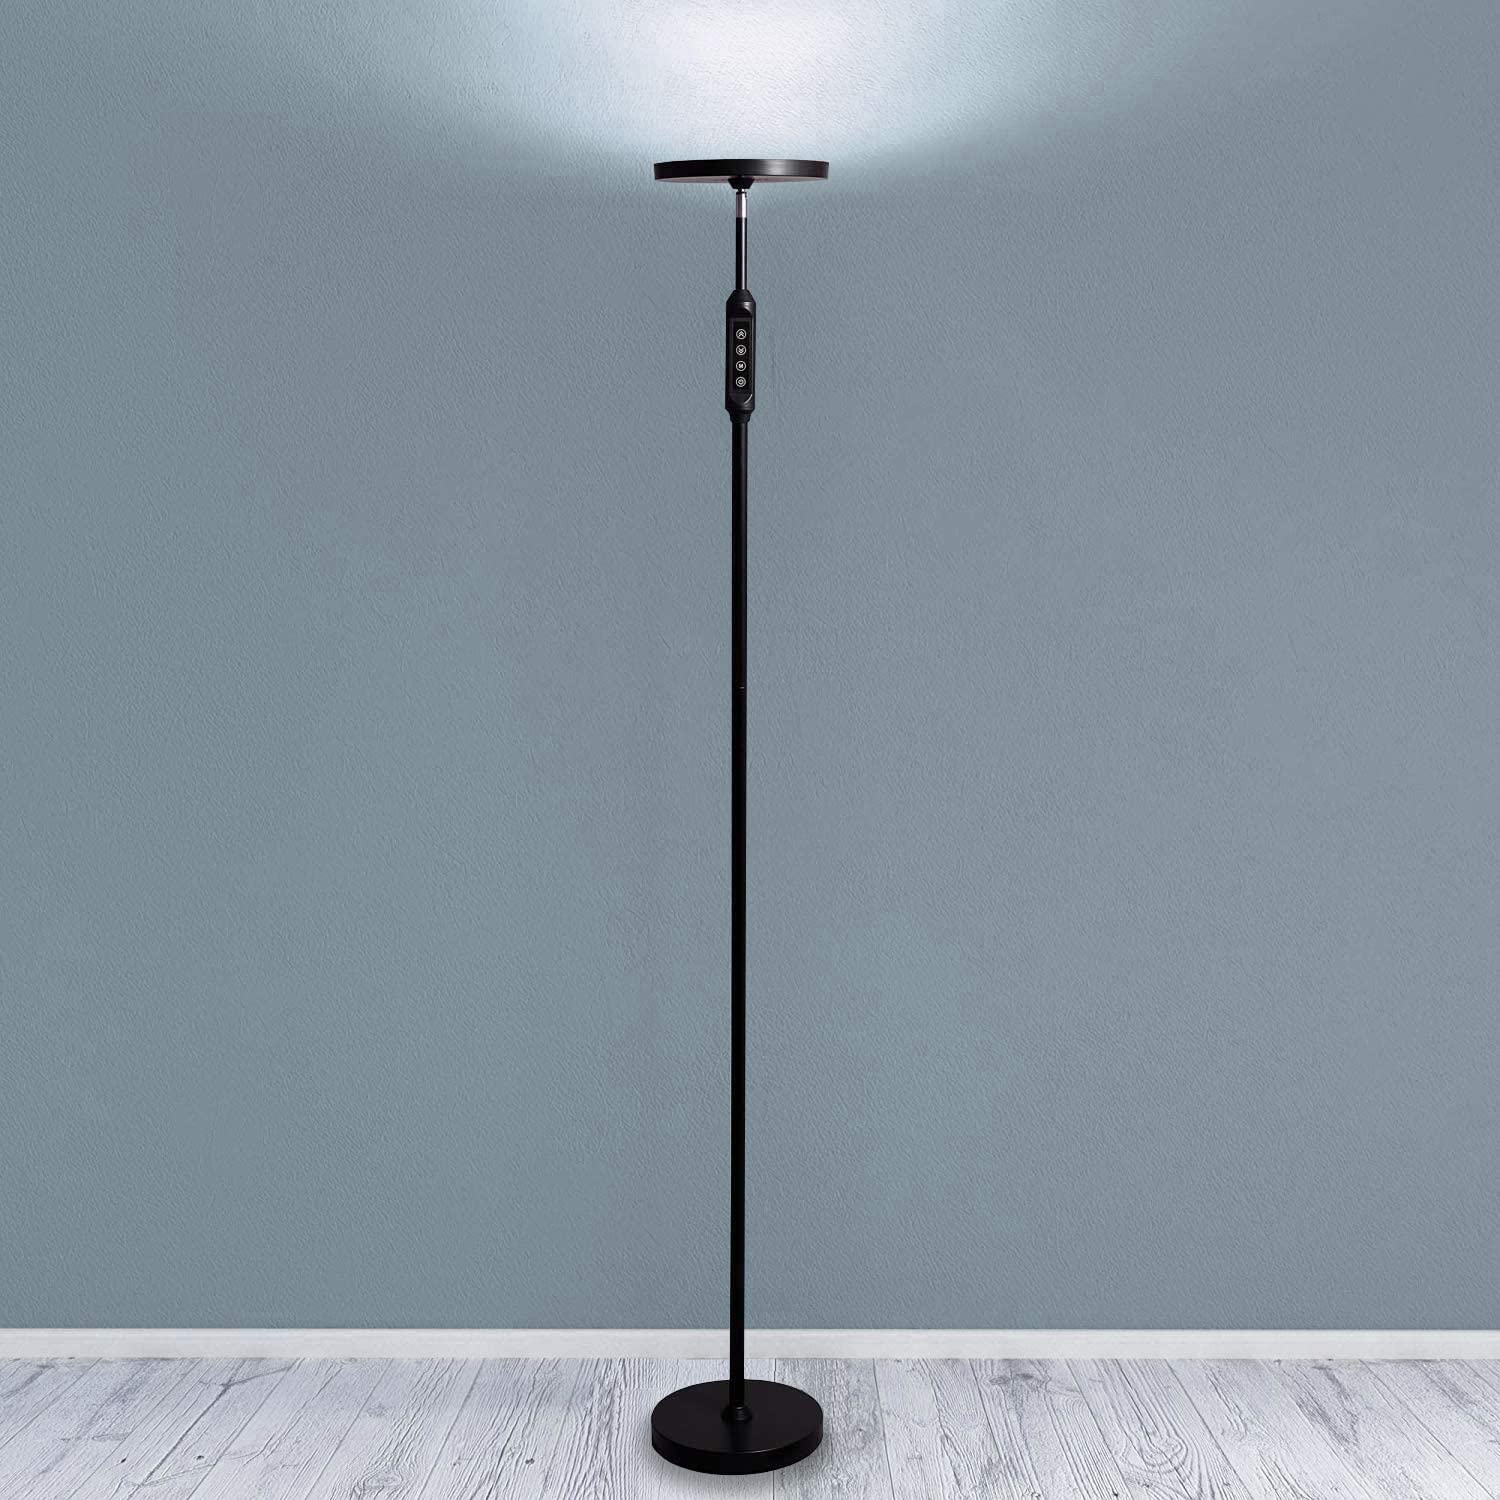 Amazon Com Daylight Led Floor Standing Lamp Tall Modern Reading Task Uplight 24w Adjustable Warm Cool Super Bright Natural Light Torchiere For Living Room Dorm Bedroom Or Office Dimmable